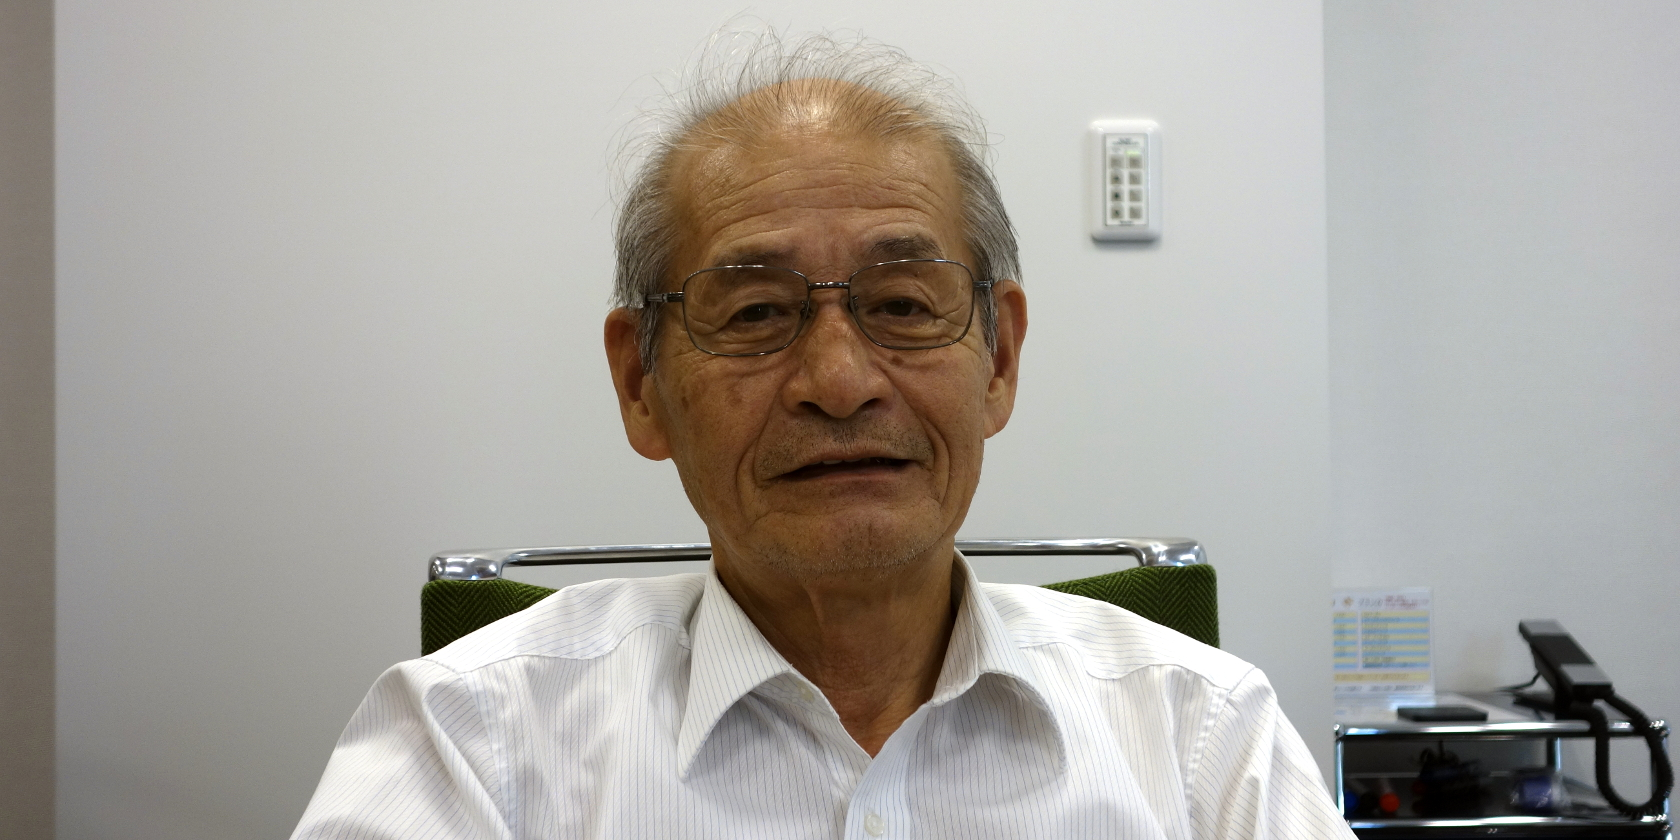 Interview: LIBTEC President Akira Yoshino Discusses Pursuit of All-Solid-State LiB Development